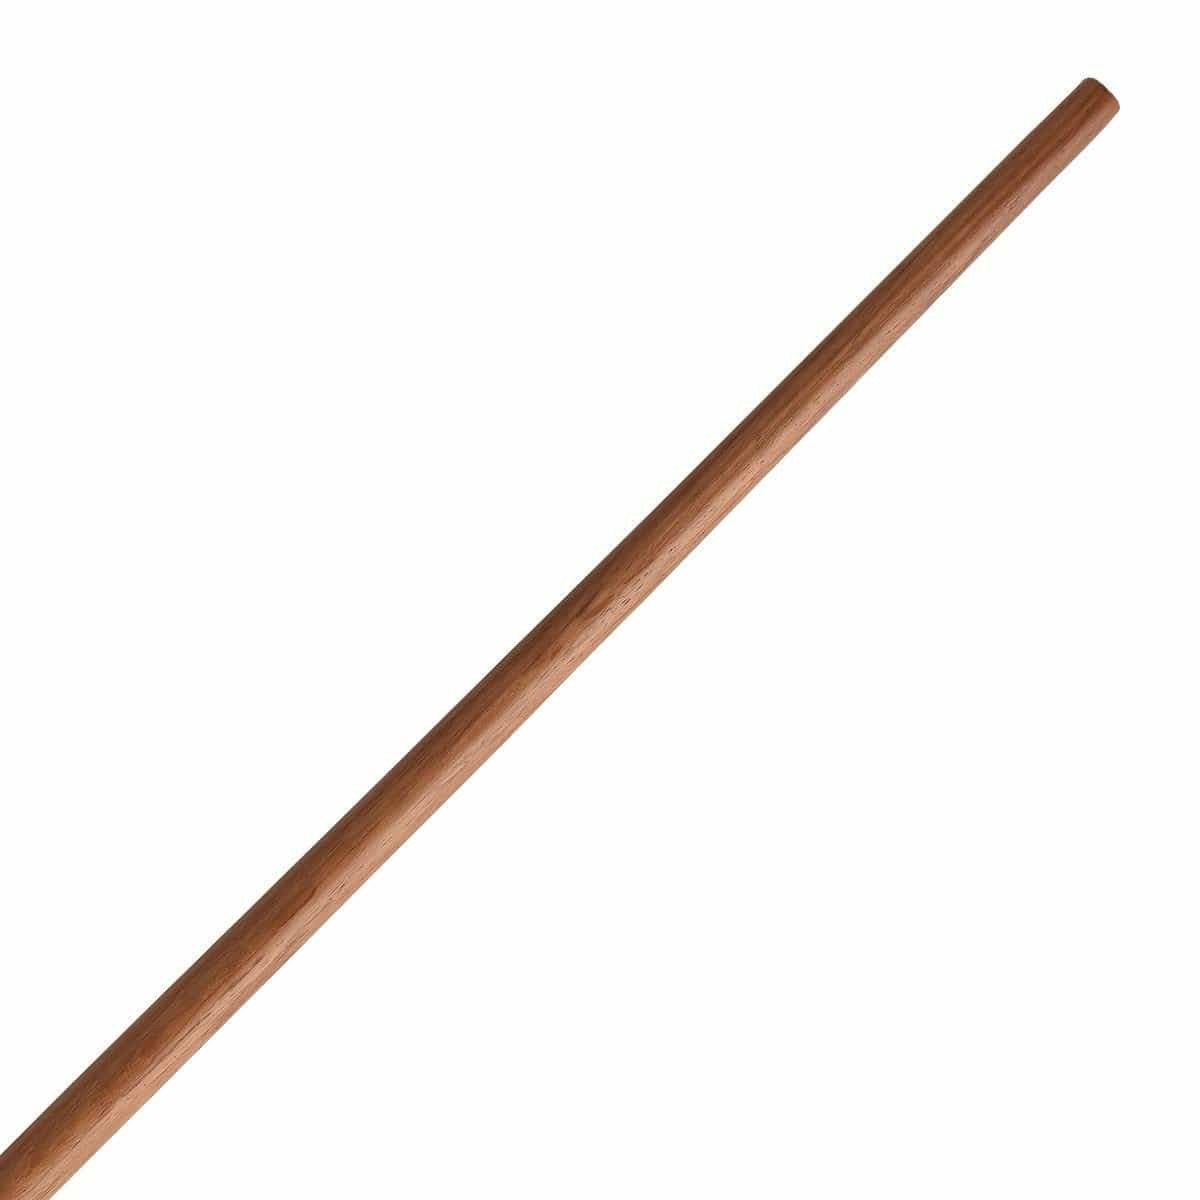 Tapered Hardwood Bo Staff Martial Arts Karate Weapons c1244 - BlackBeltShop